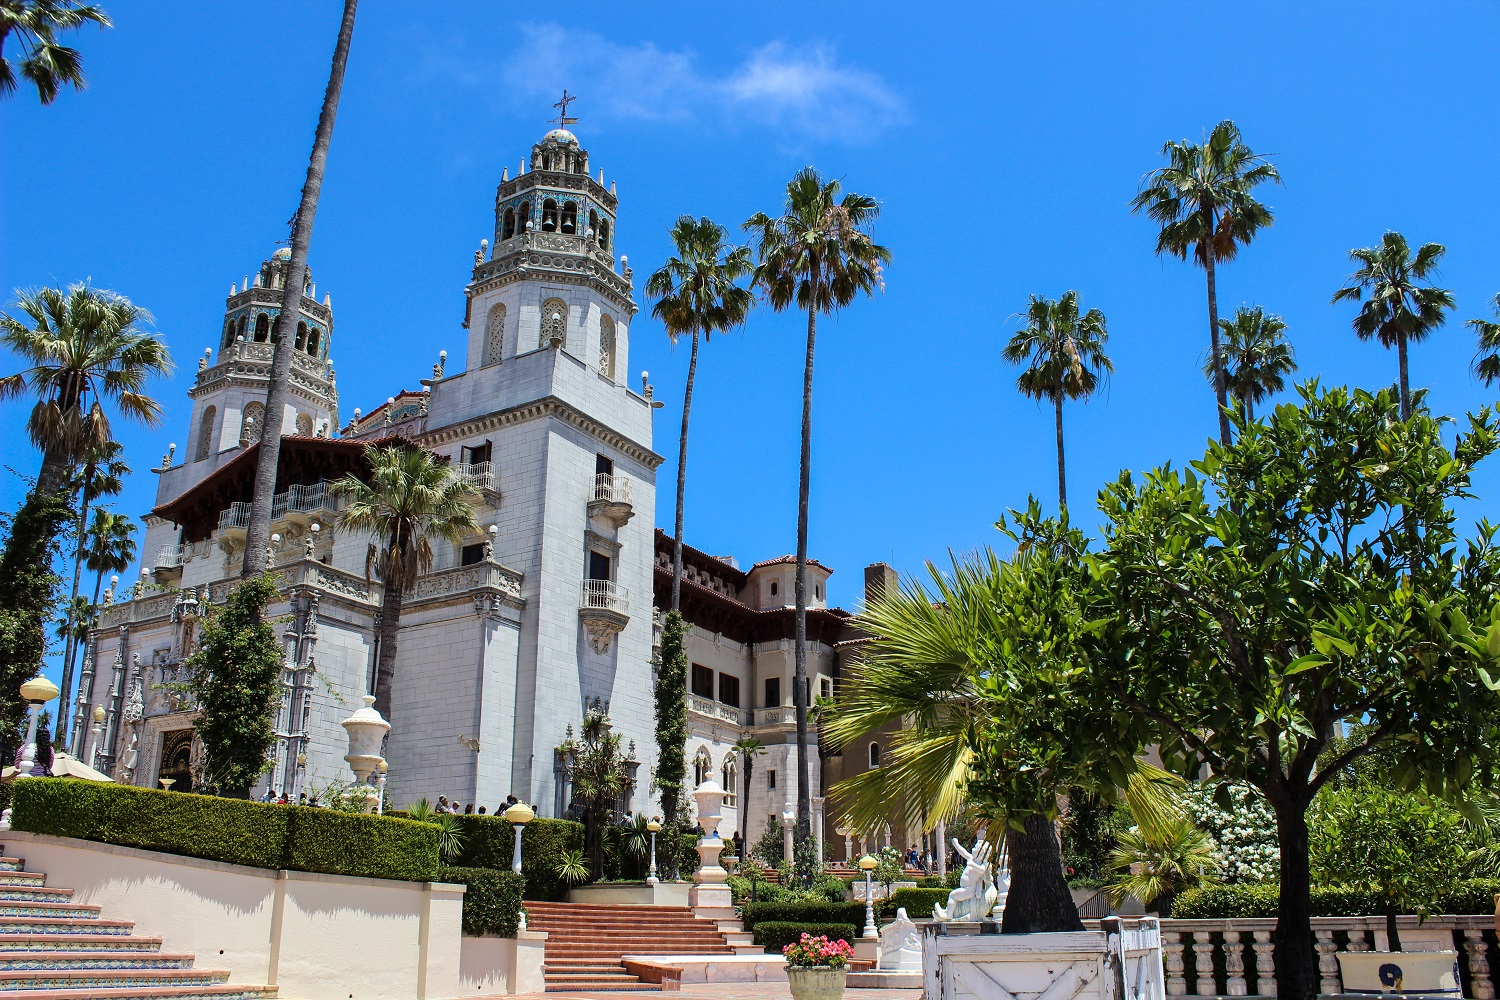 Hearst Castle, by Diyana Aquino Mendoza Price, San Luis Obispo, Pamela Price, travel story